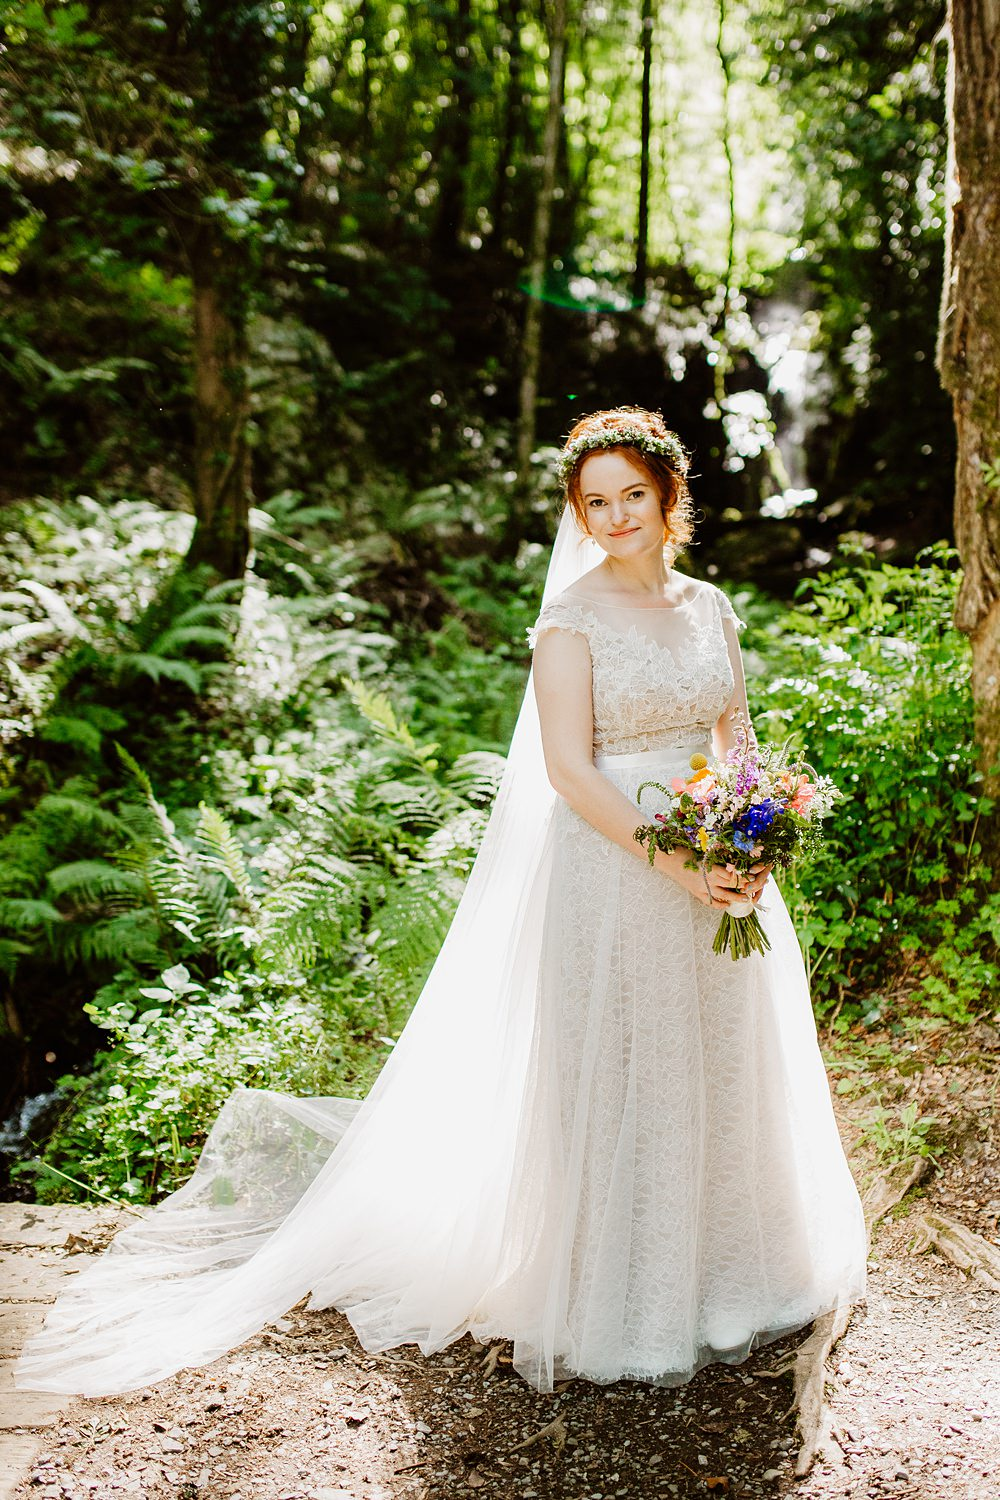 Dress Gown Bride Bridal Lace Tulle Farah Watters Illusion Canonteign Falls Wedding Holly Collings Photography